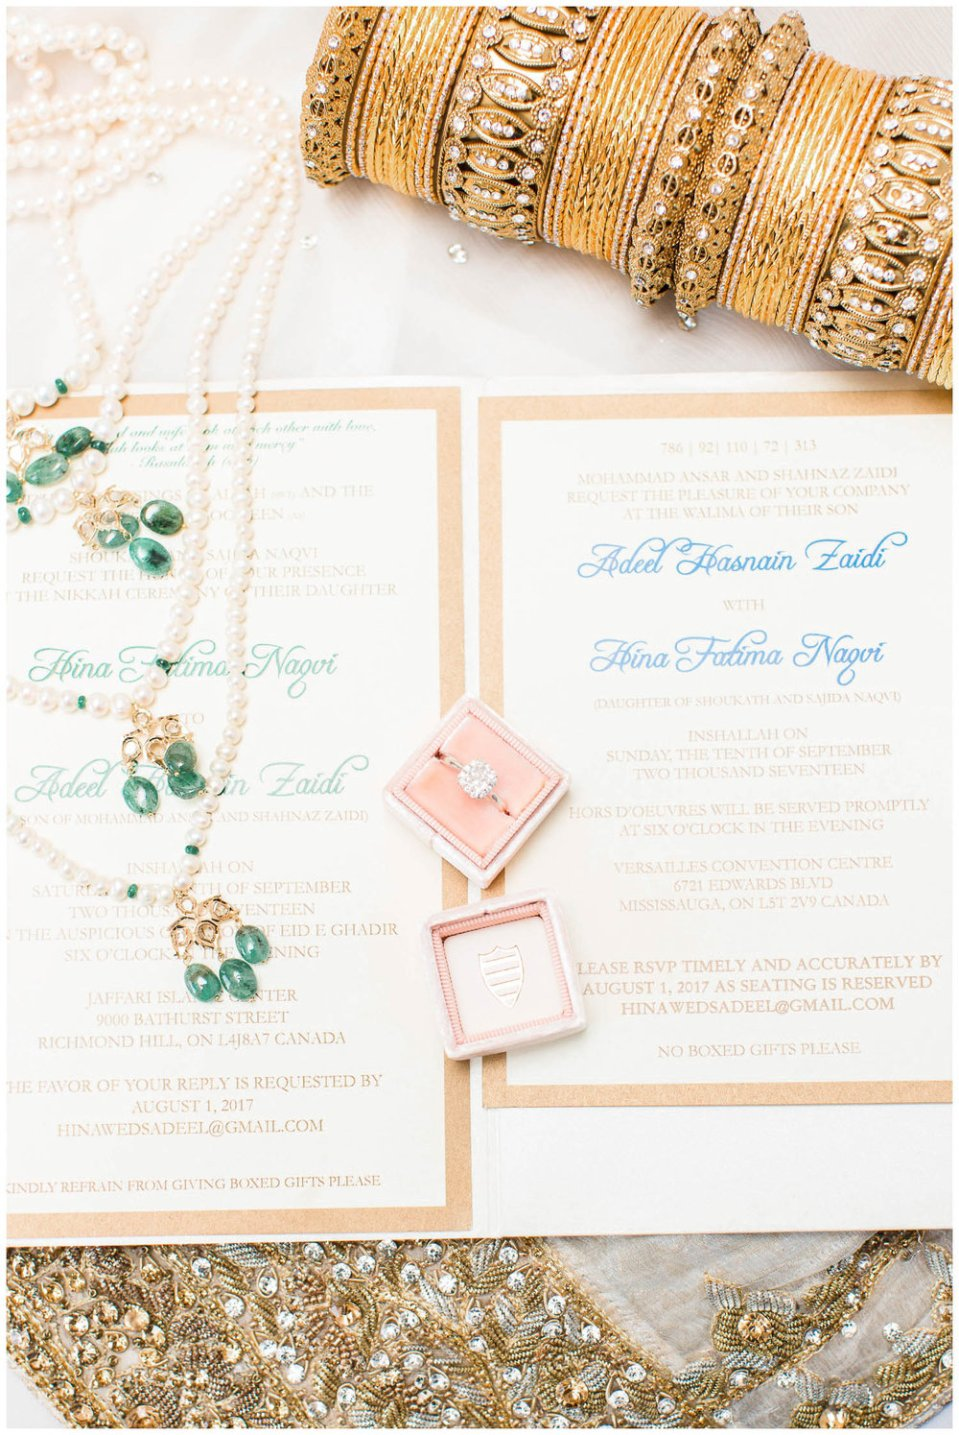 Magnificent Wedding Favors Mississauga Ideas - The Wedding Ideas ...